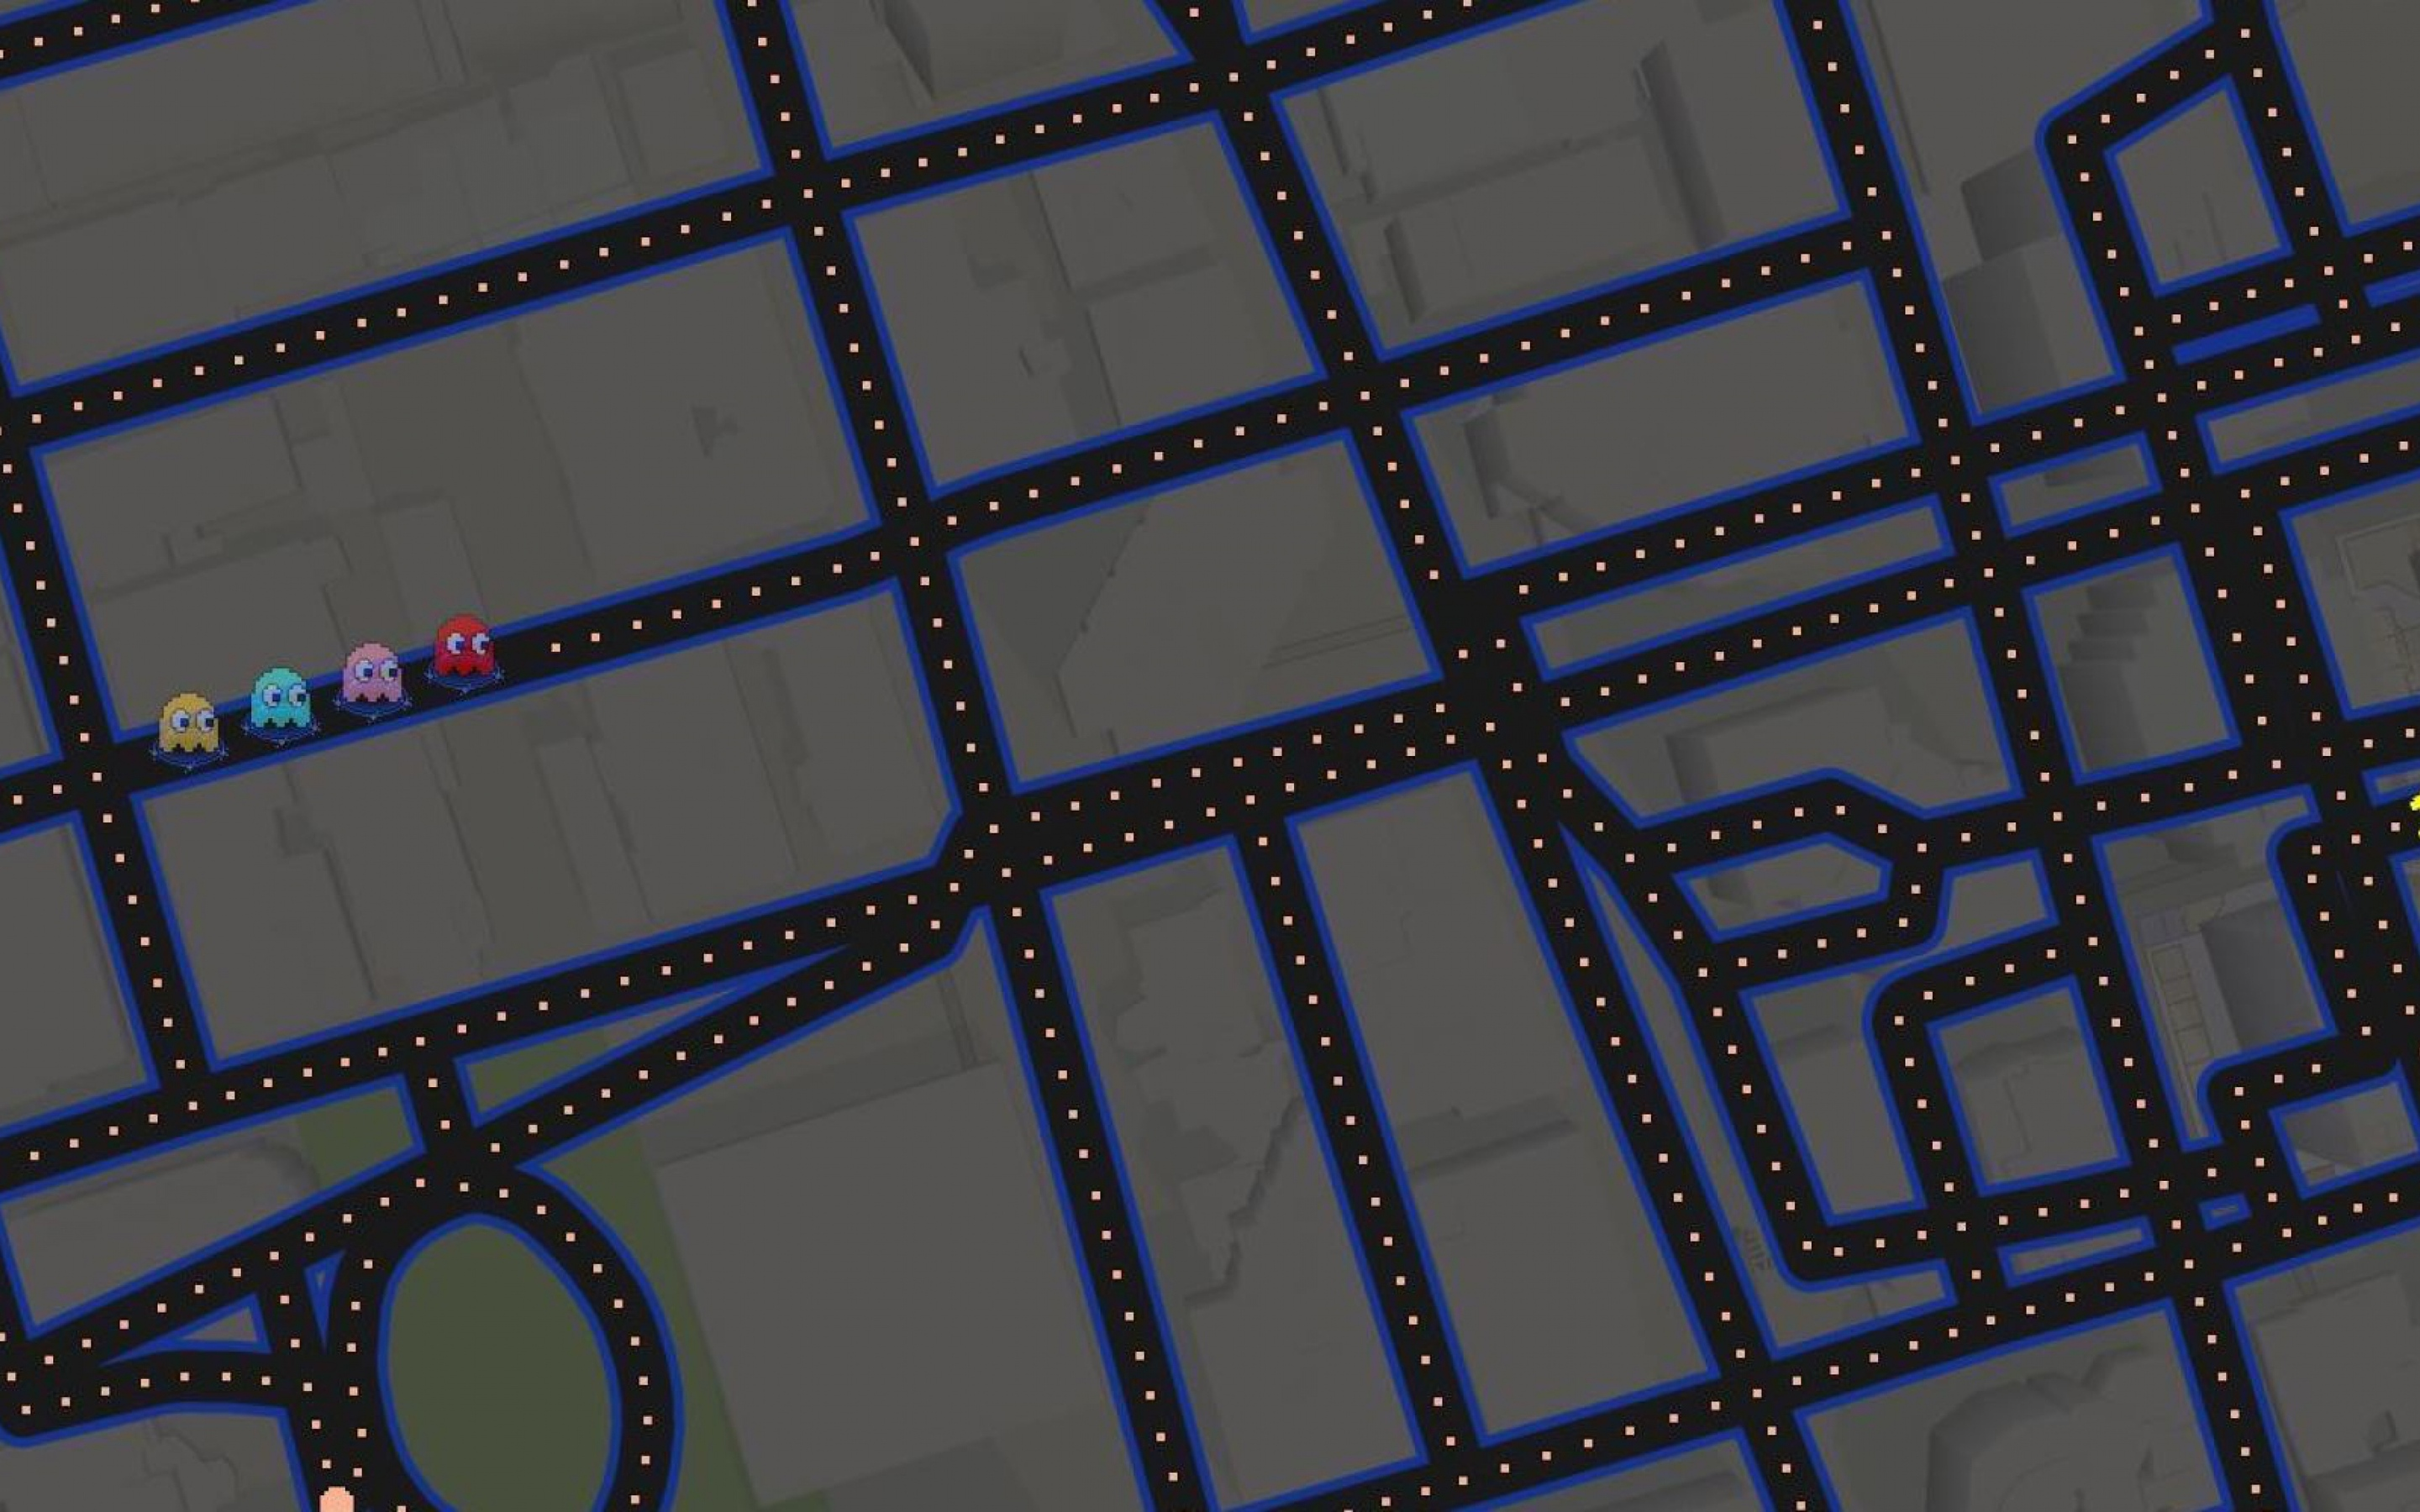 2880x1800 Google Maps Pacman Art Macbook Pro Retina HD 4k ... on maps for microsoft office, maps for tablets, maps for kindle fire, maps for iphone,